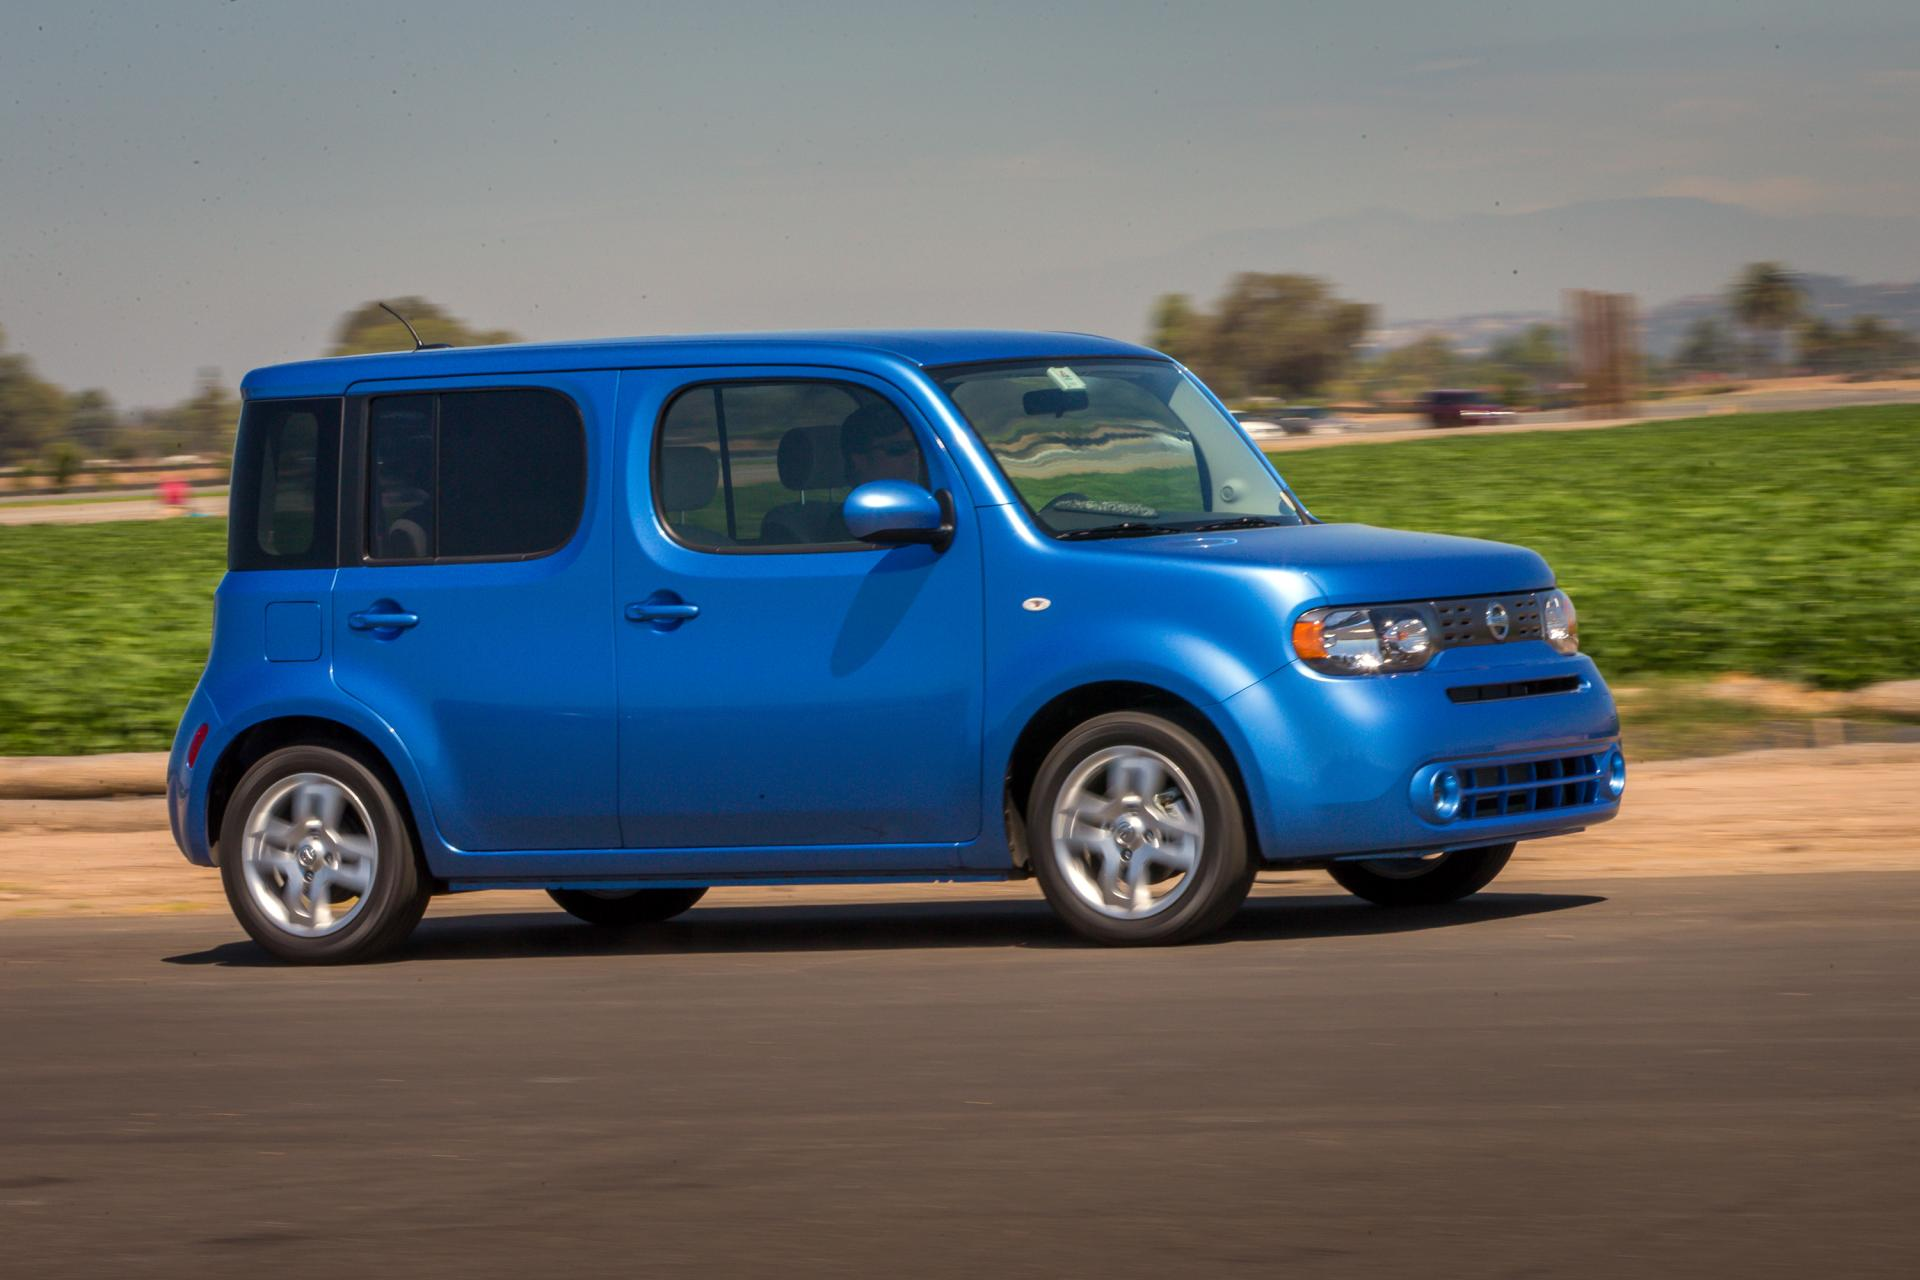 2014 Nissan Cube Wallpaper and Image Gallery 1920x1280